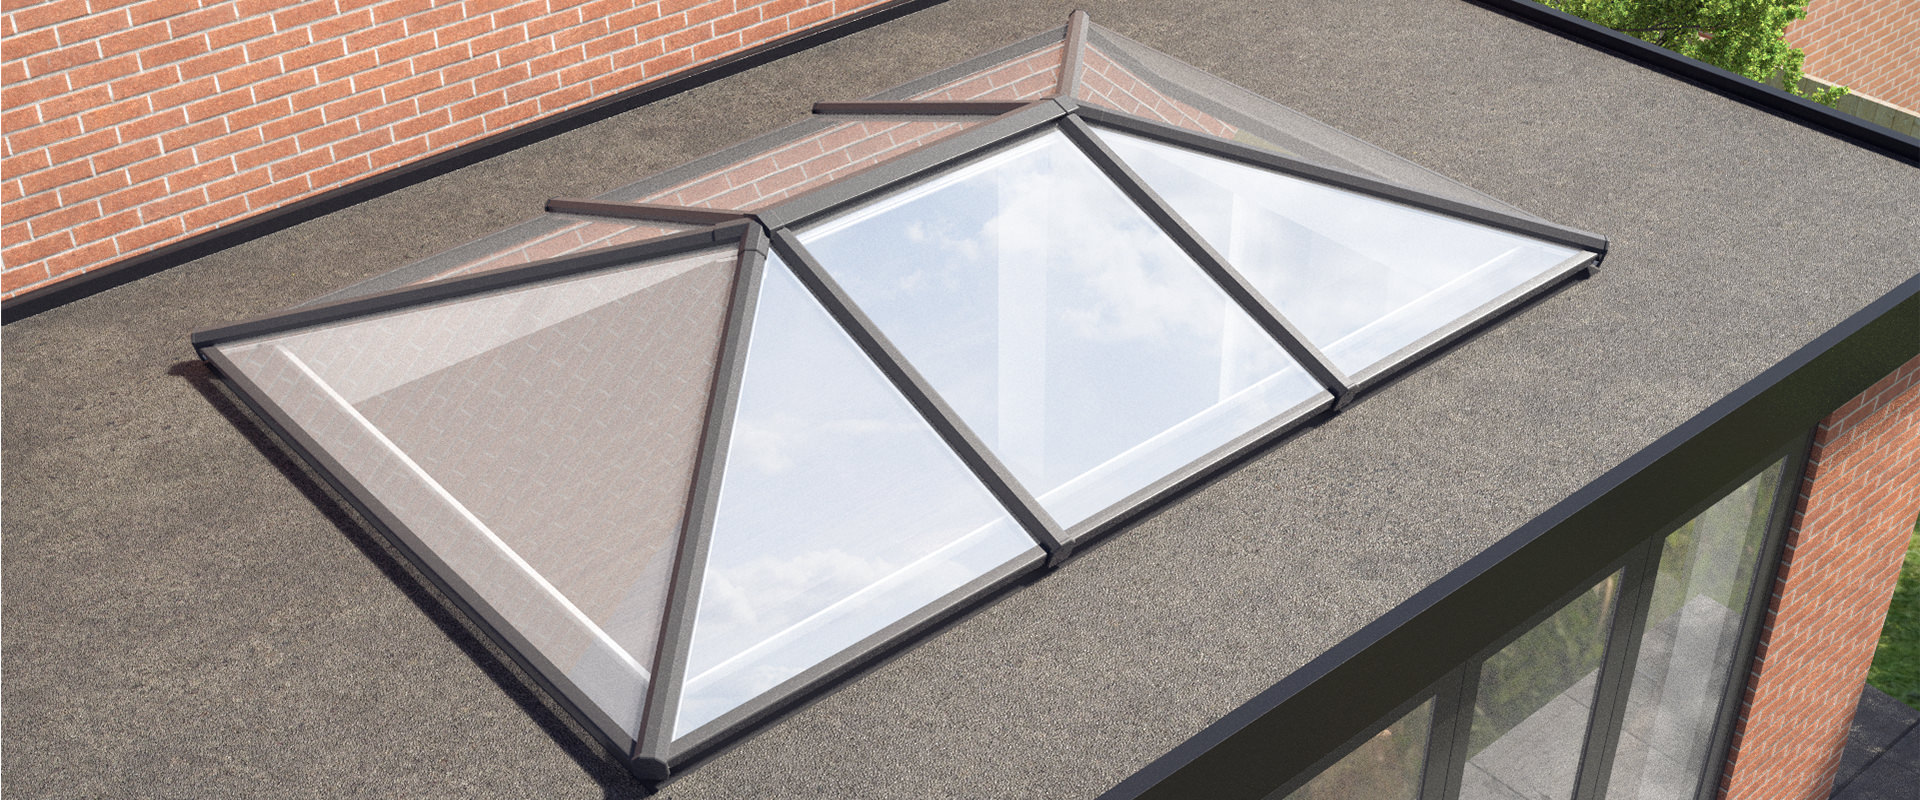 Conservatory Roof Prices Essex